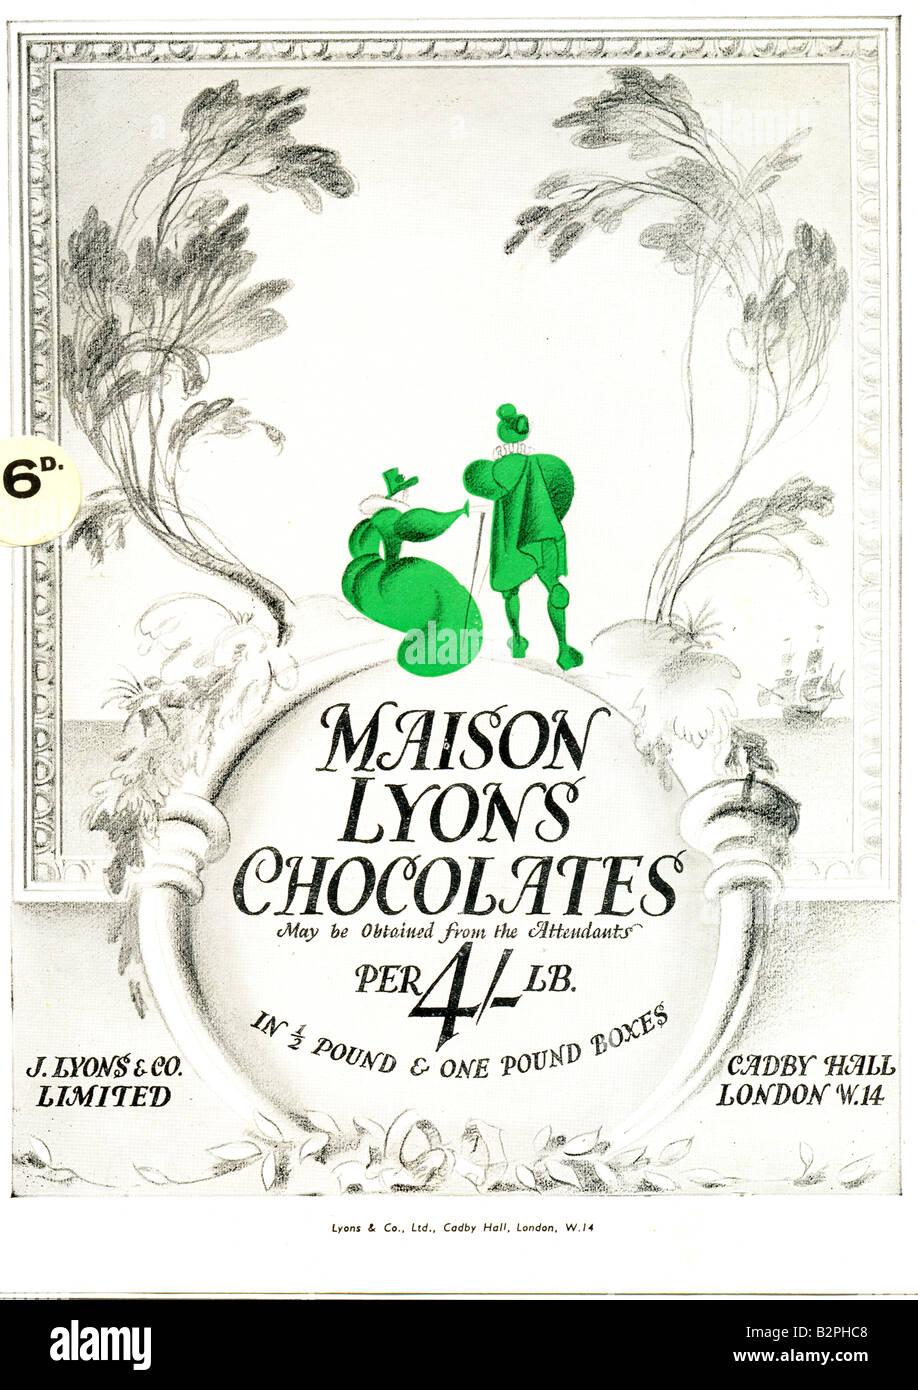 Advertisement for Maison Lyons Chocolates in 1936 London theatre programme - Stock Image